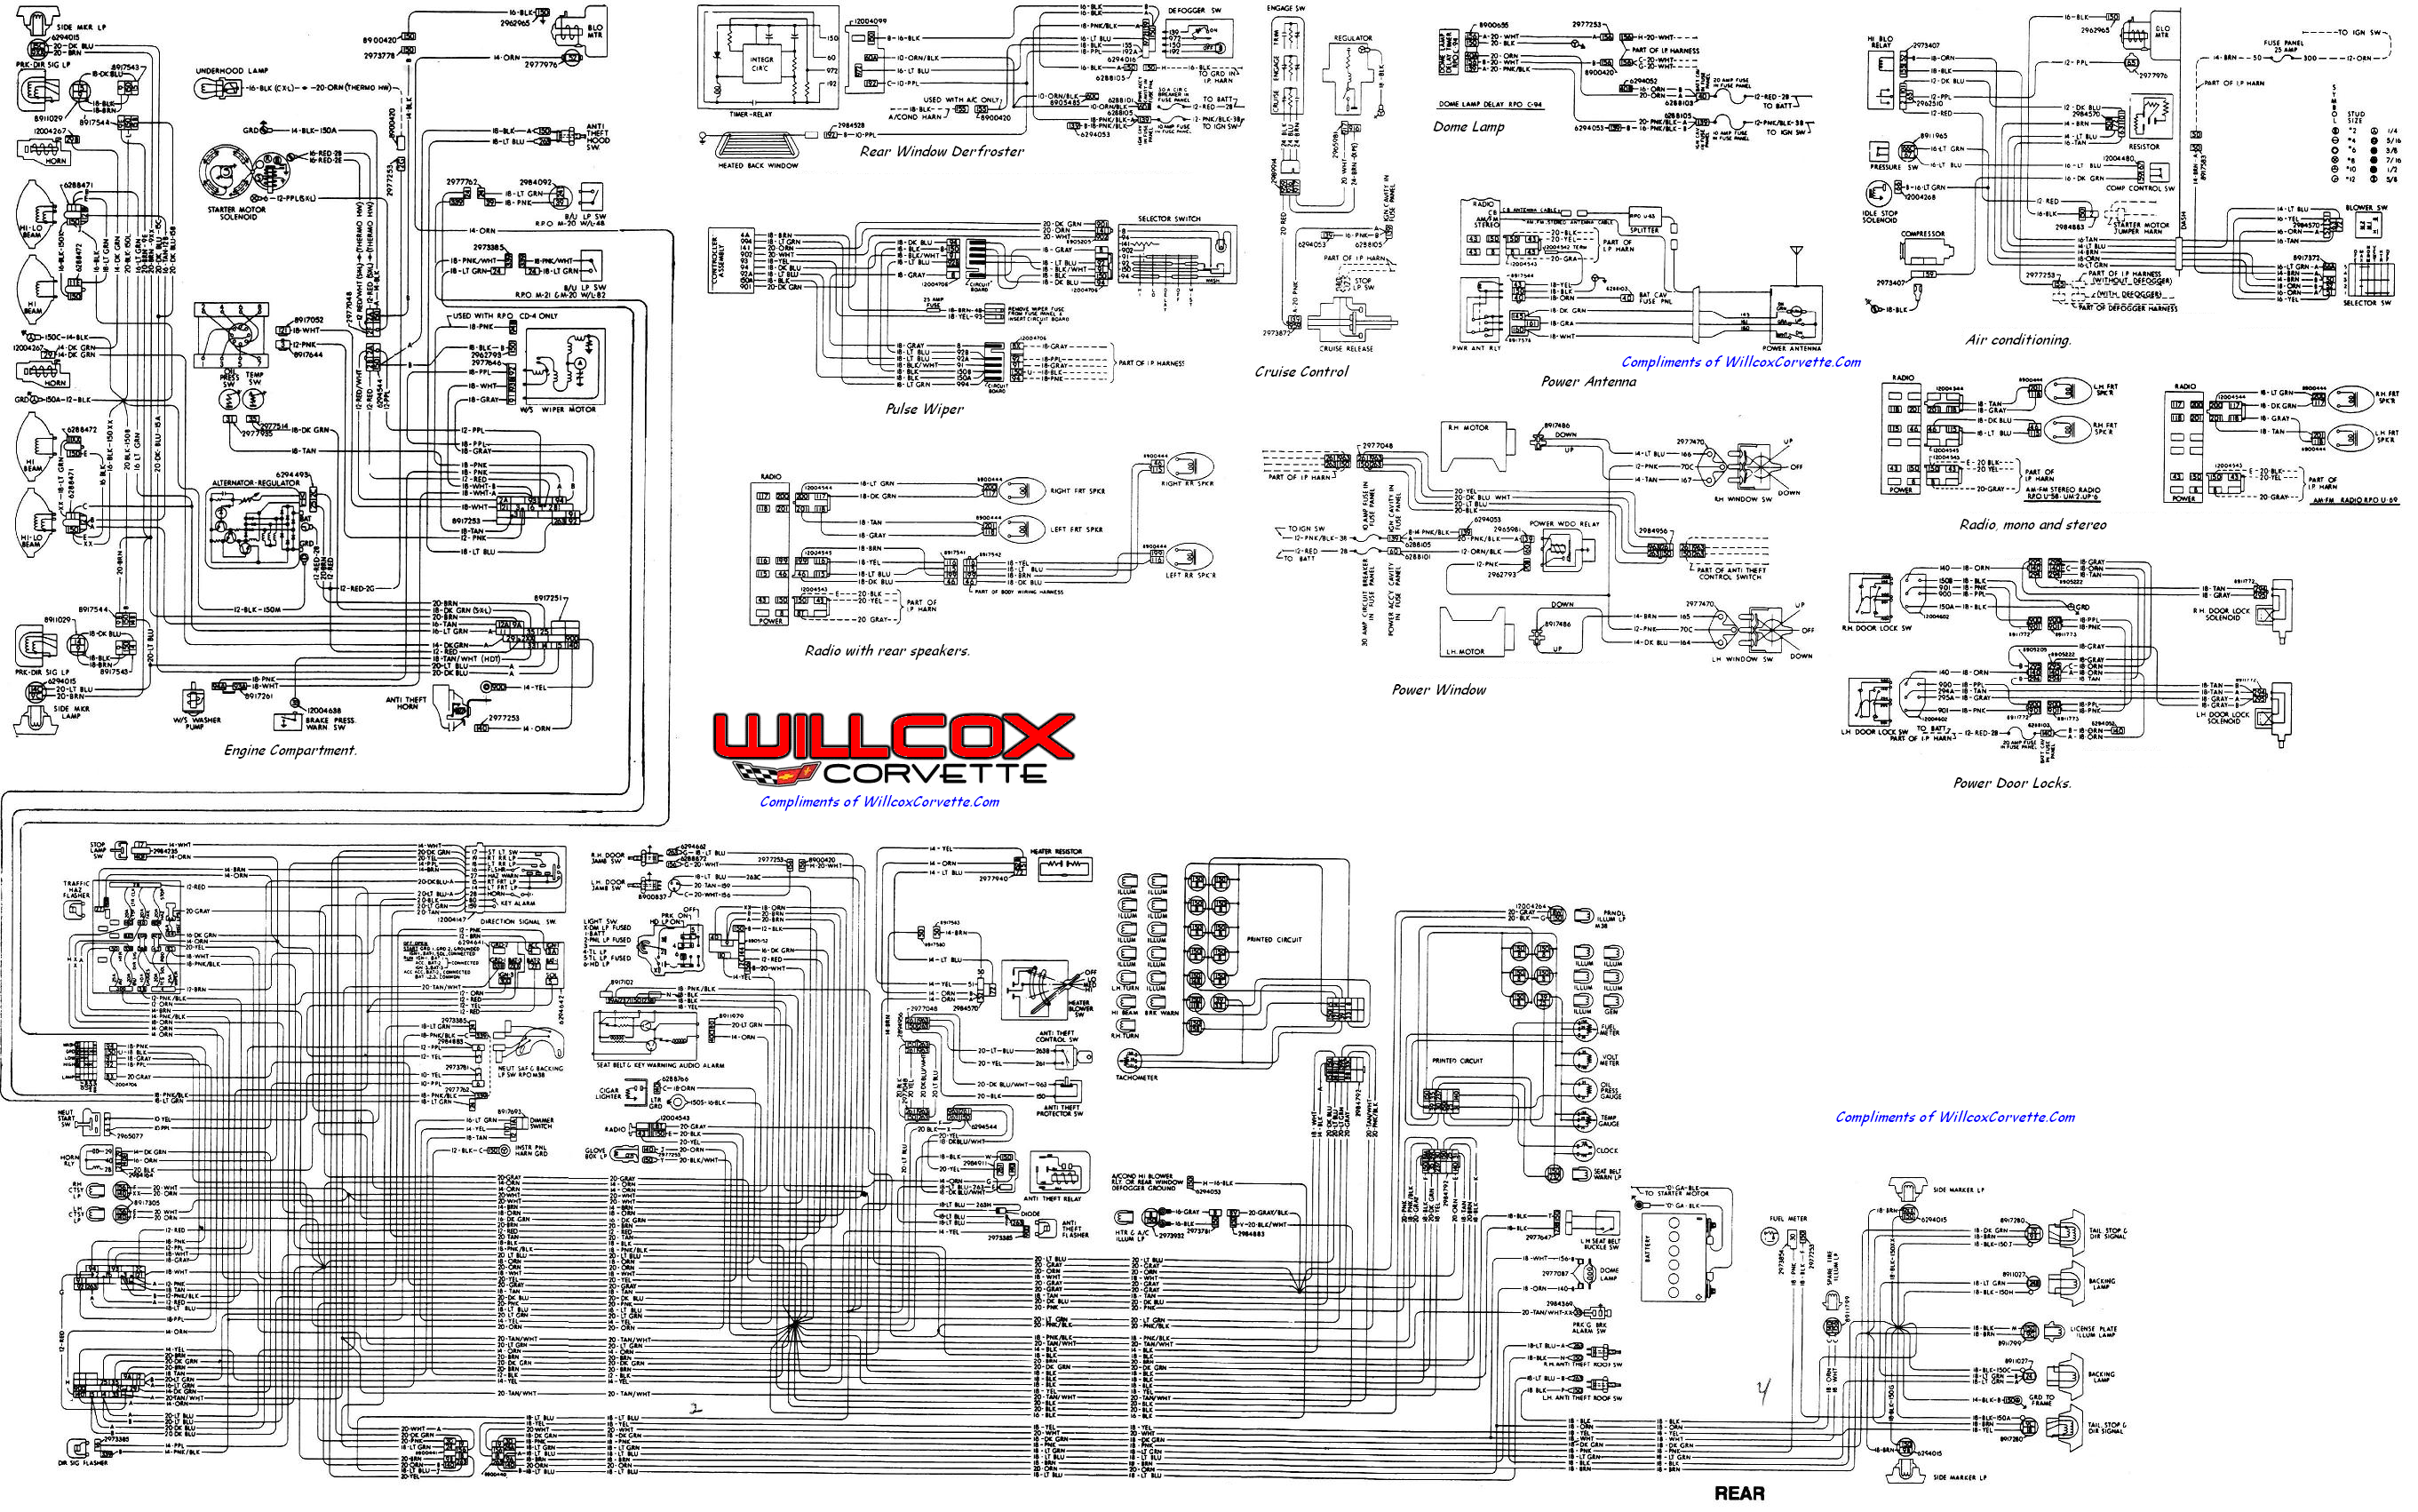 78 tracer schematic use this one 1978 fuses corvetteforum chevrolet corvette forum discussion 1980 trans am fuse box diagram at mr168.co